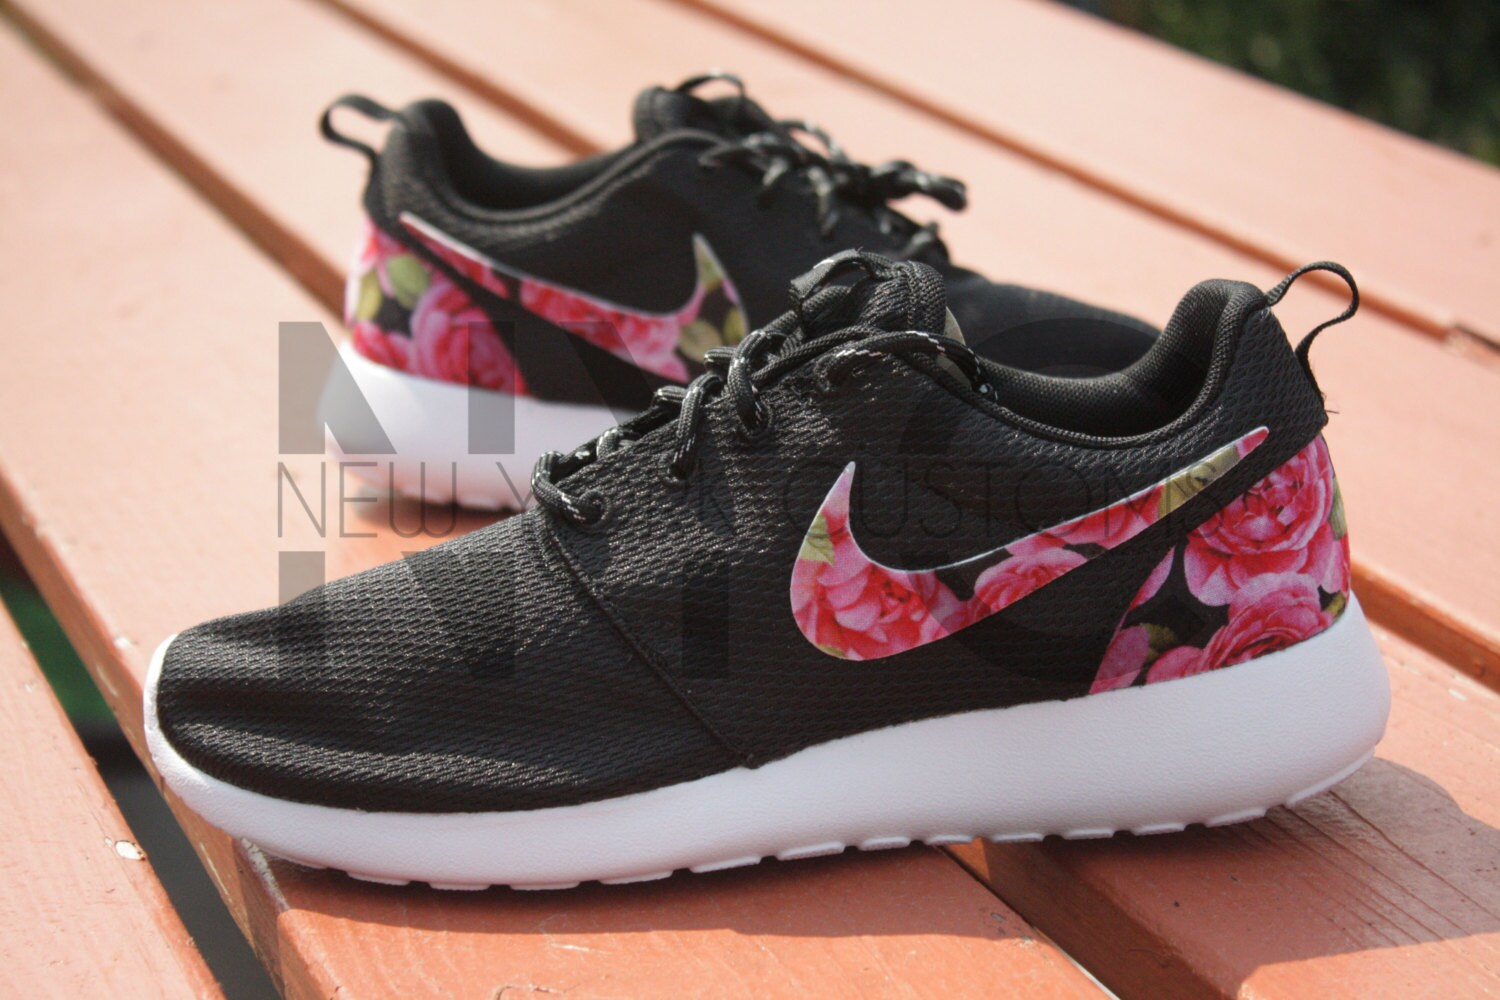 nike shox poursuite féminine - Nike Roshe Run Black White Azalea Garden Floral Print by NYCustoms